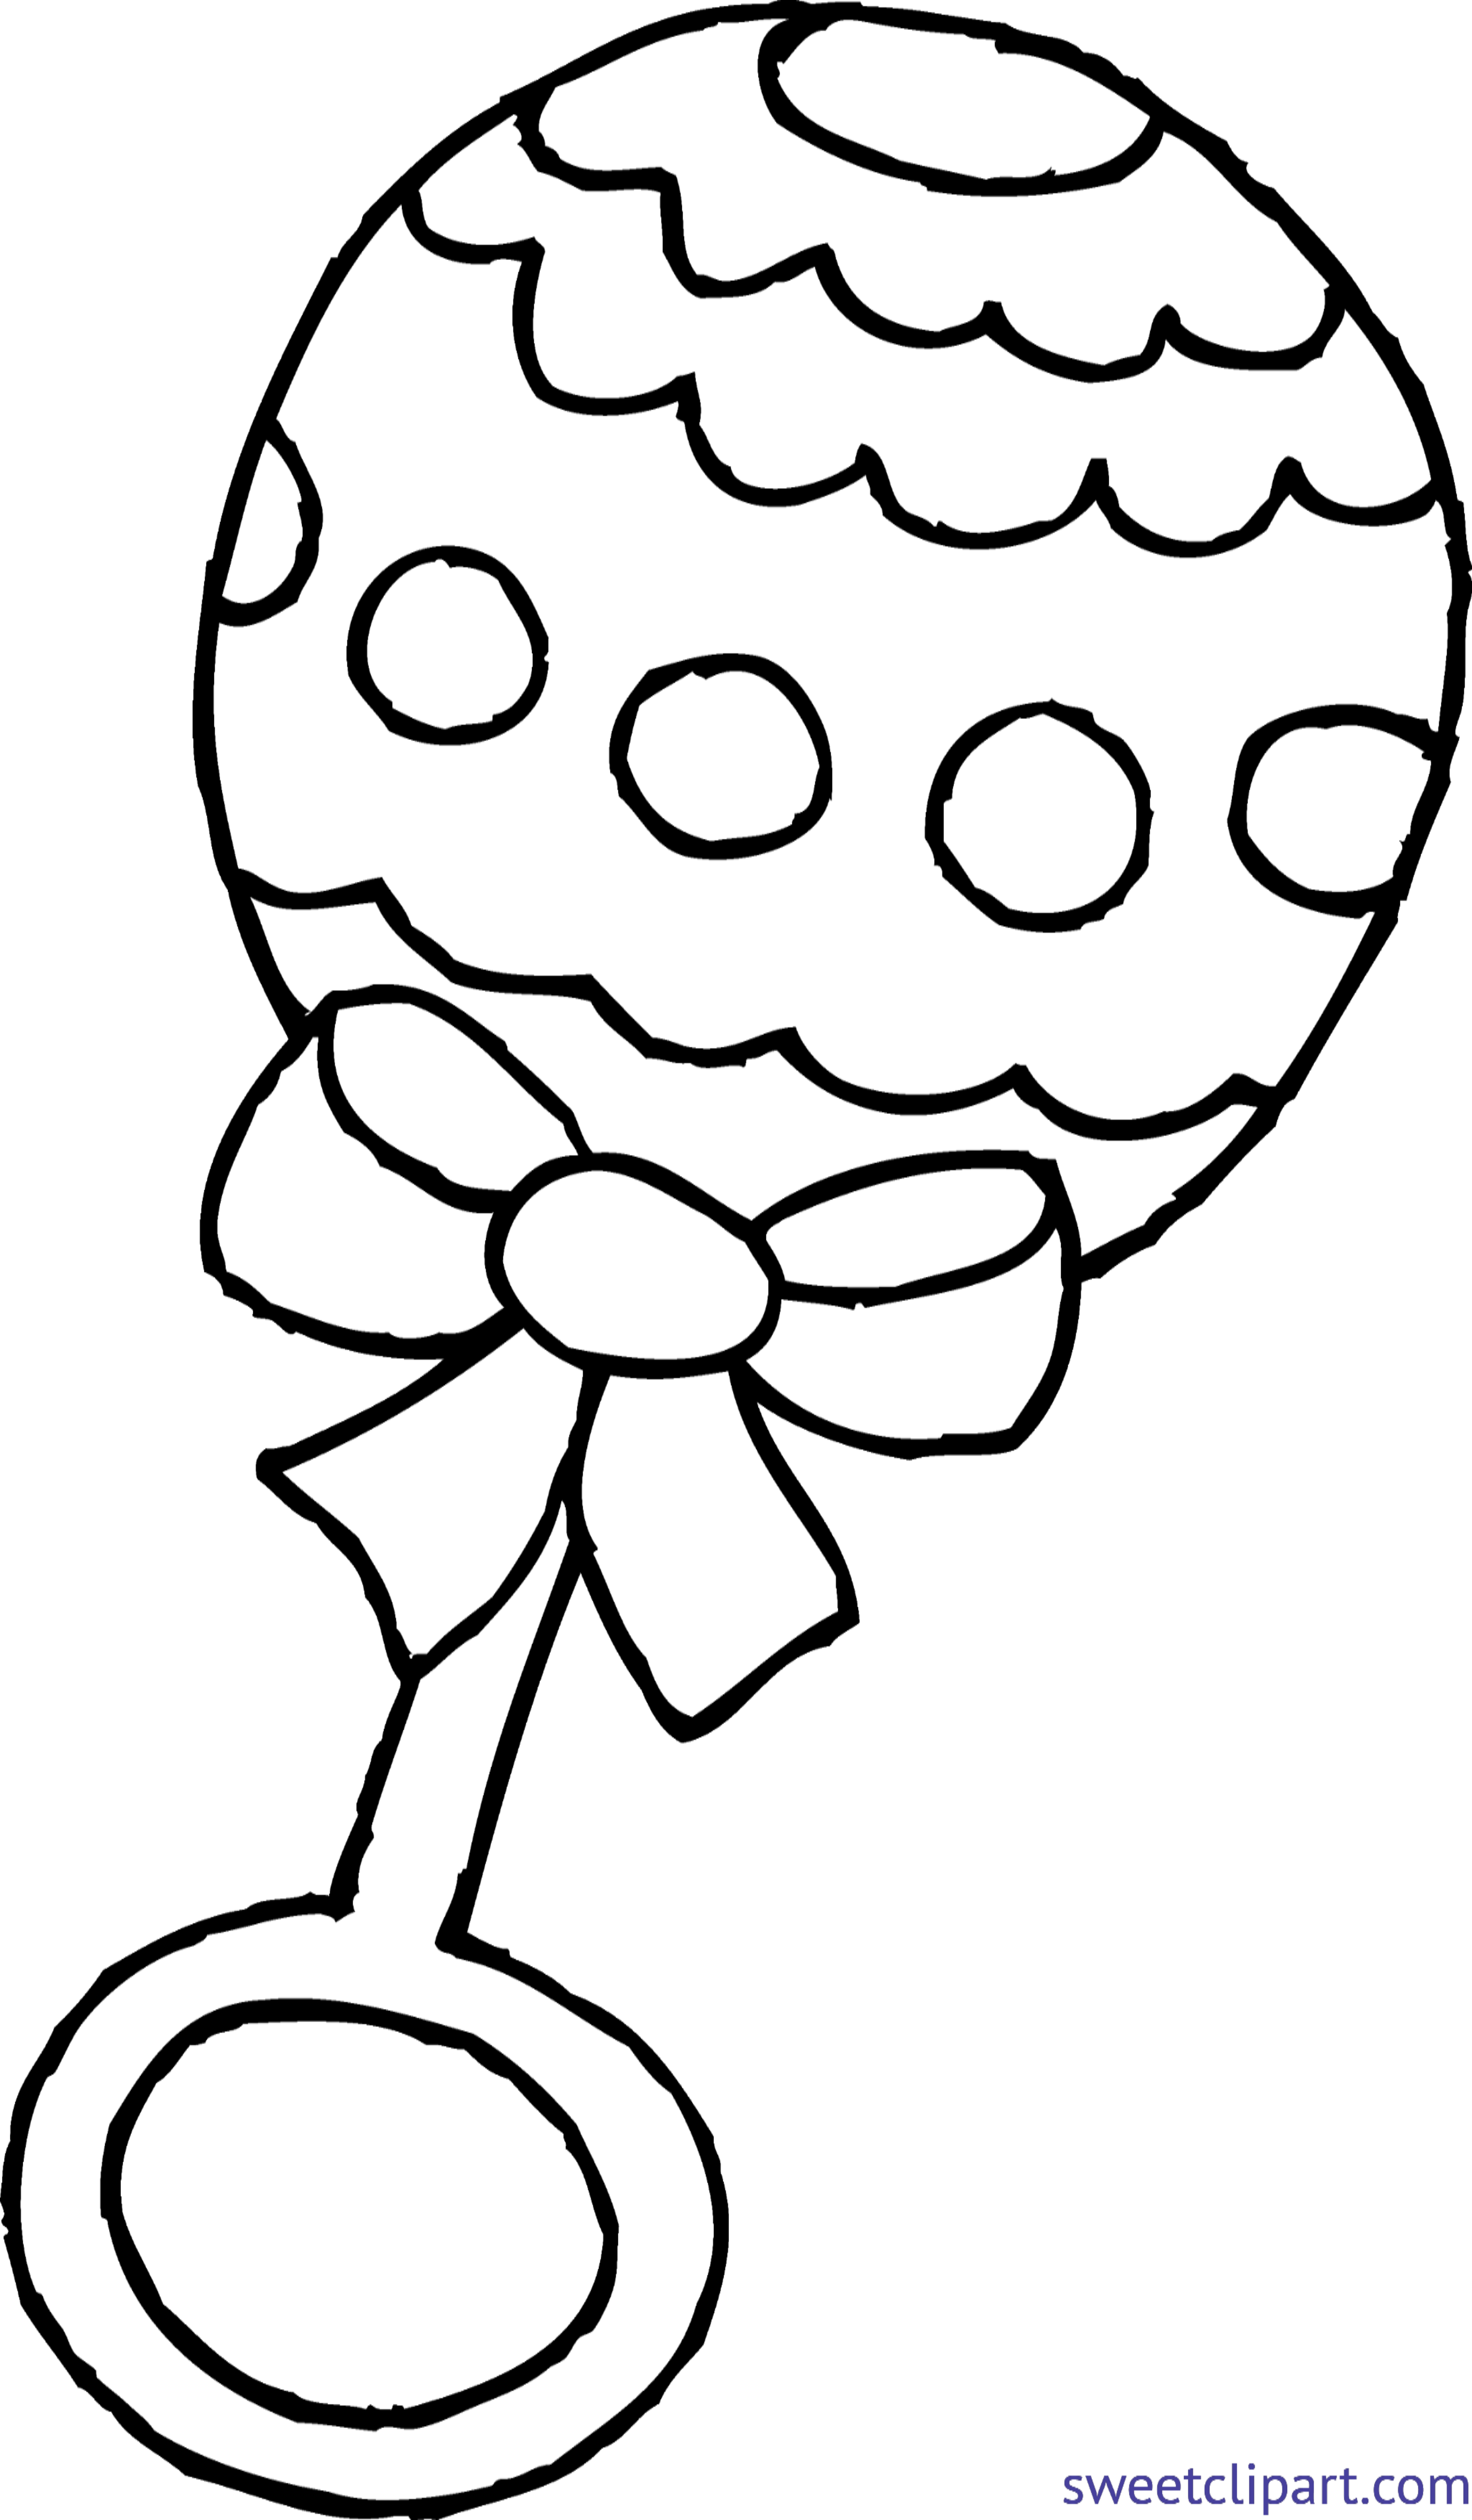 baby rattle coloring page clip art